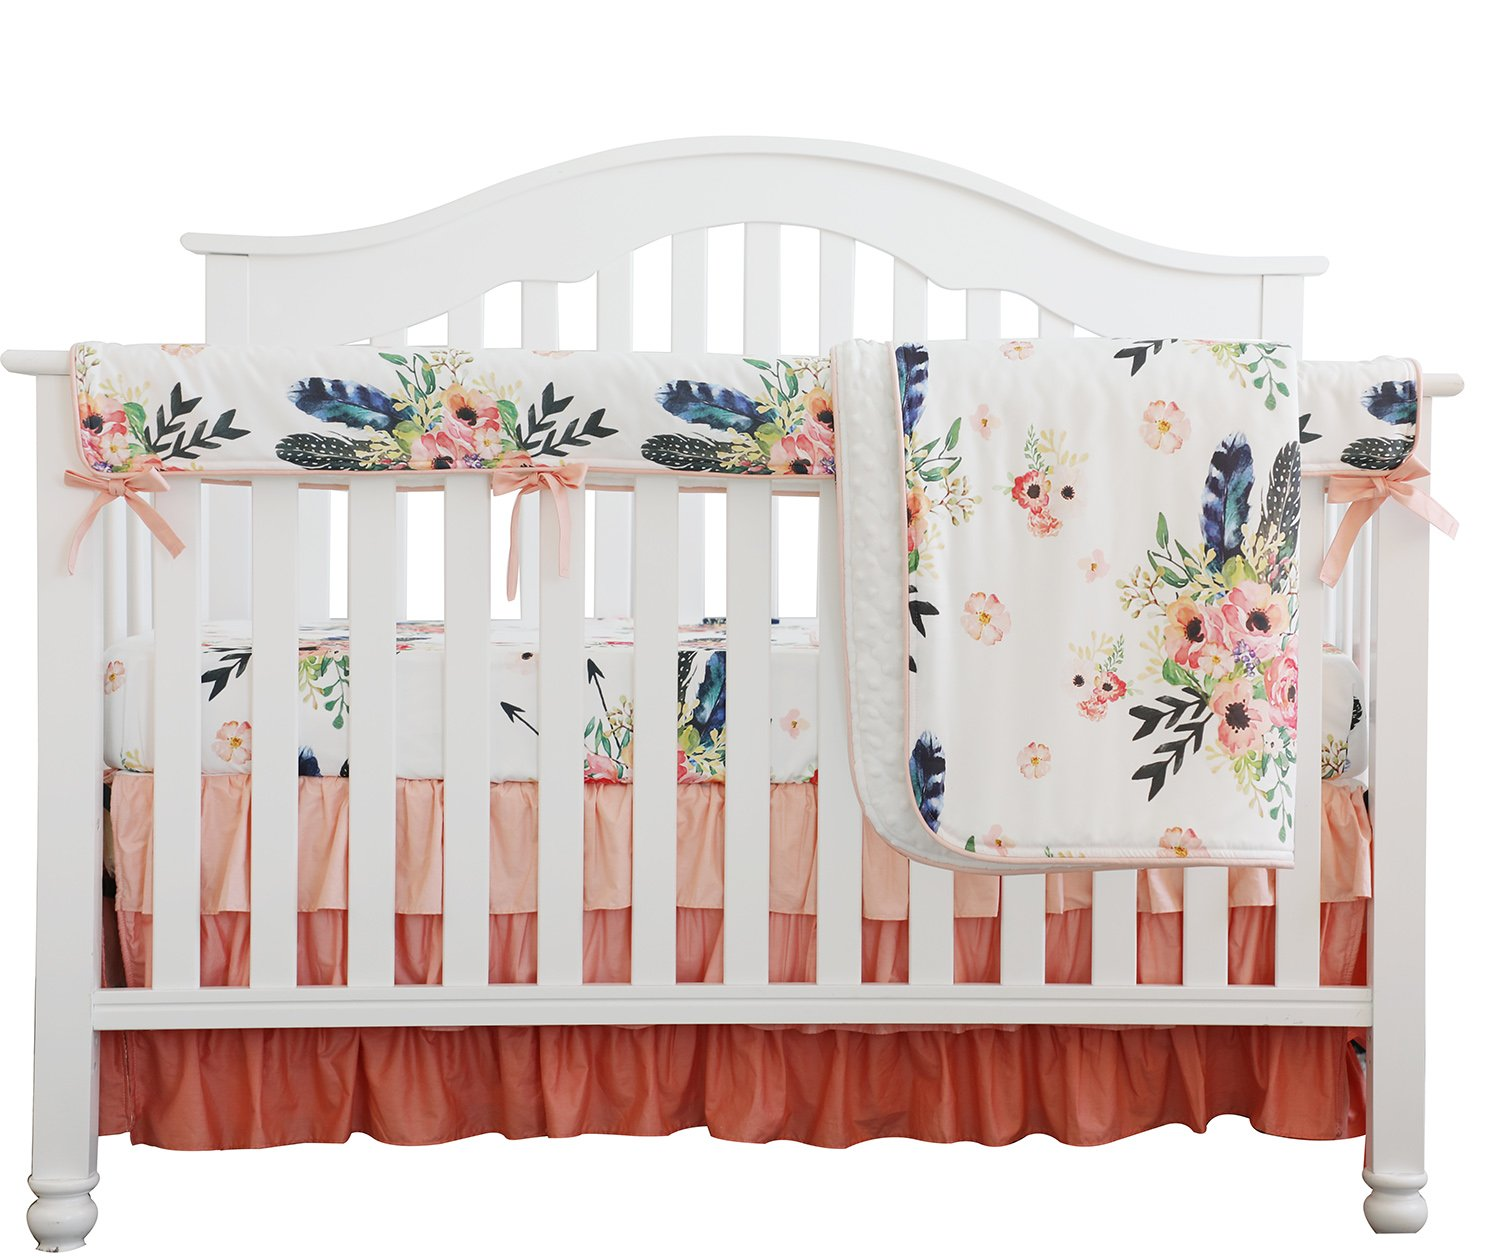 Amazon Com Boho Coral Feather Floral Ruffle Baby Minky Blanket Peach Floral Nursery Crib Skirt Set Baby Girl Crib Bedding Feather Blanket Feather Floral 4pc Set Baby